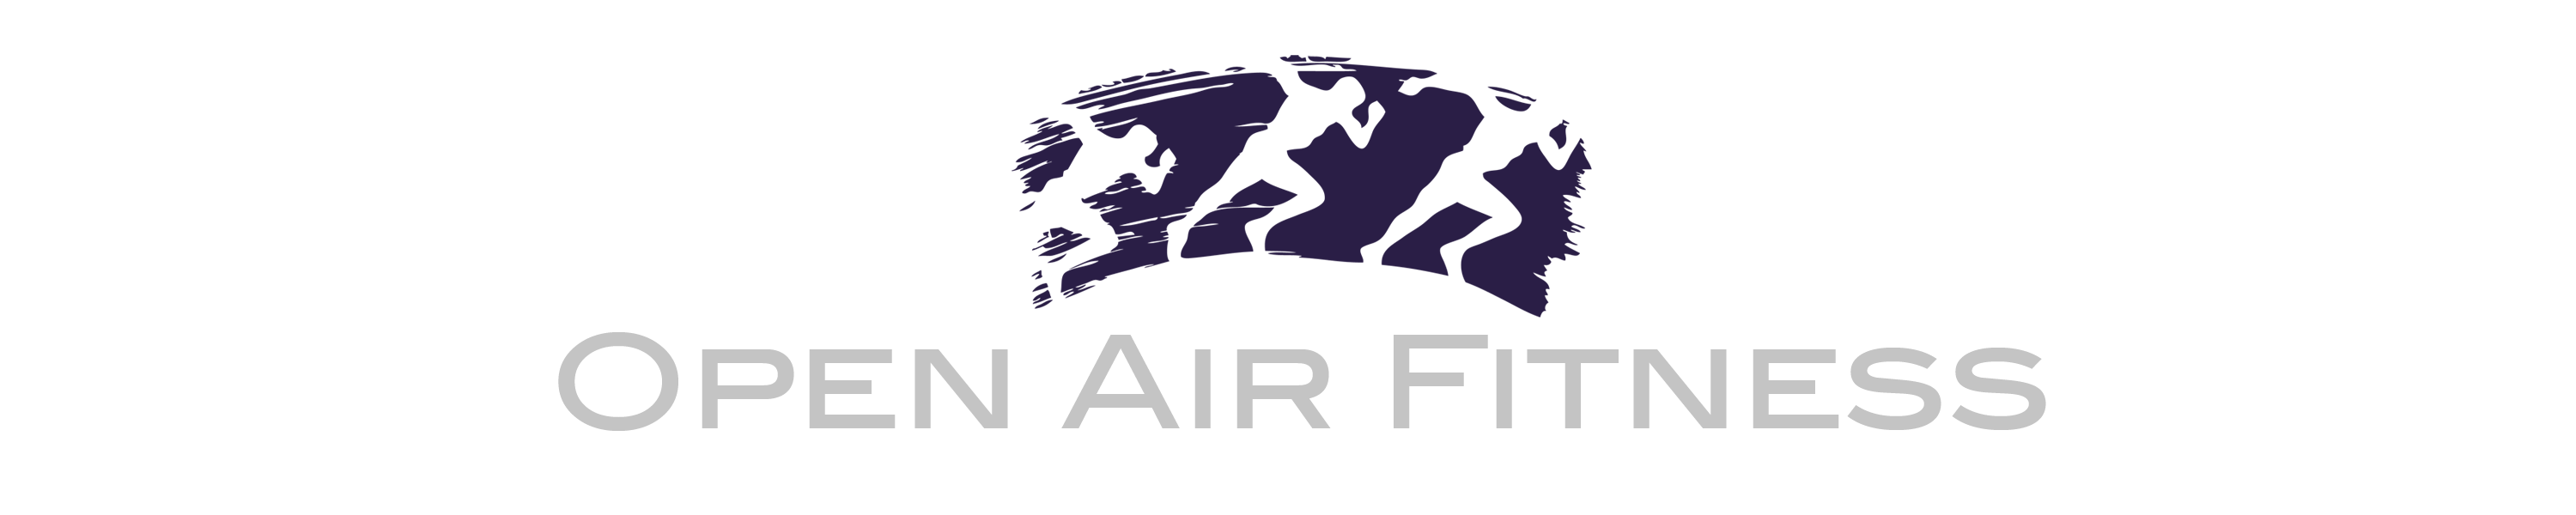 Open Air Fitness Logo